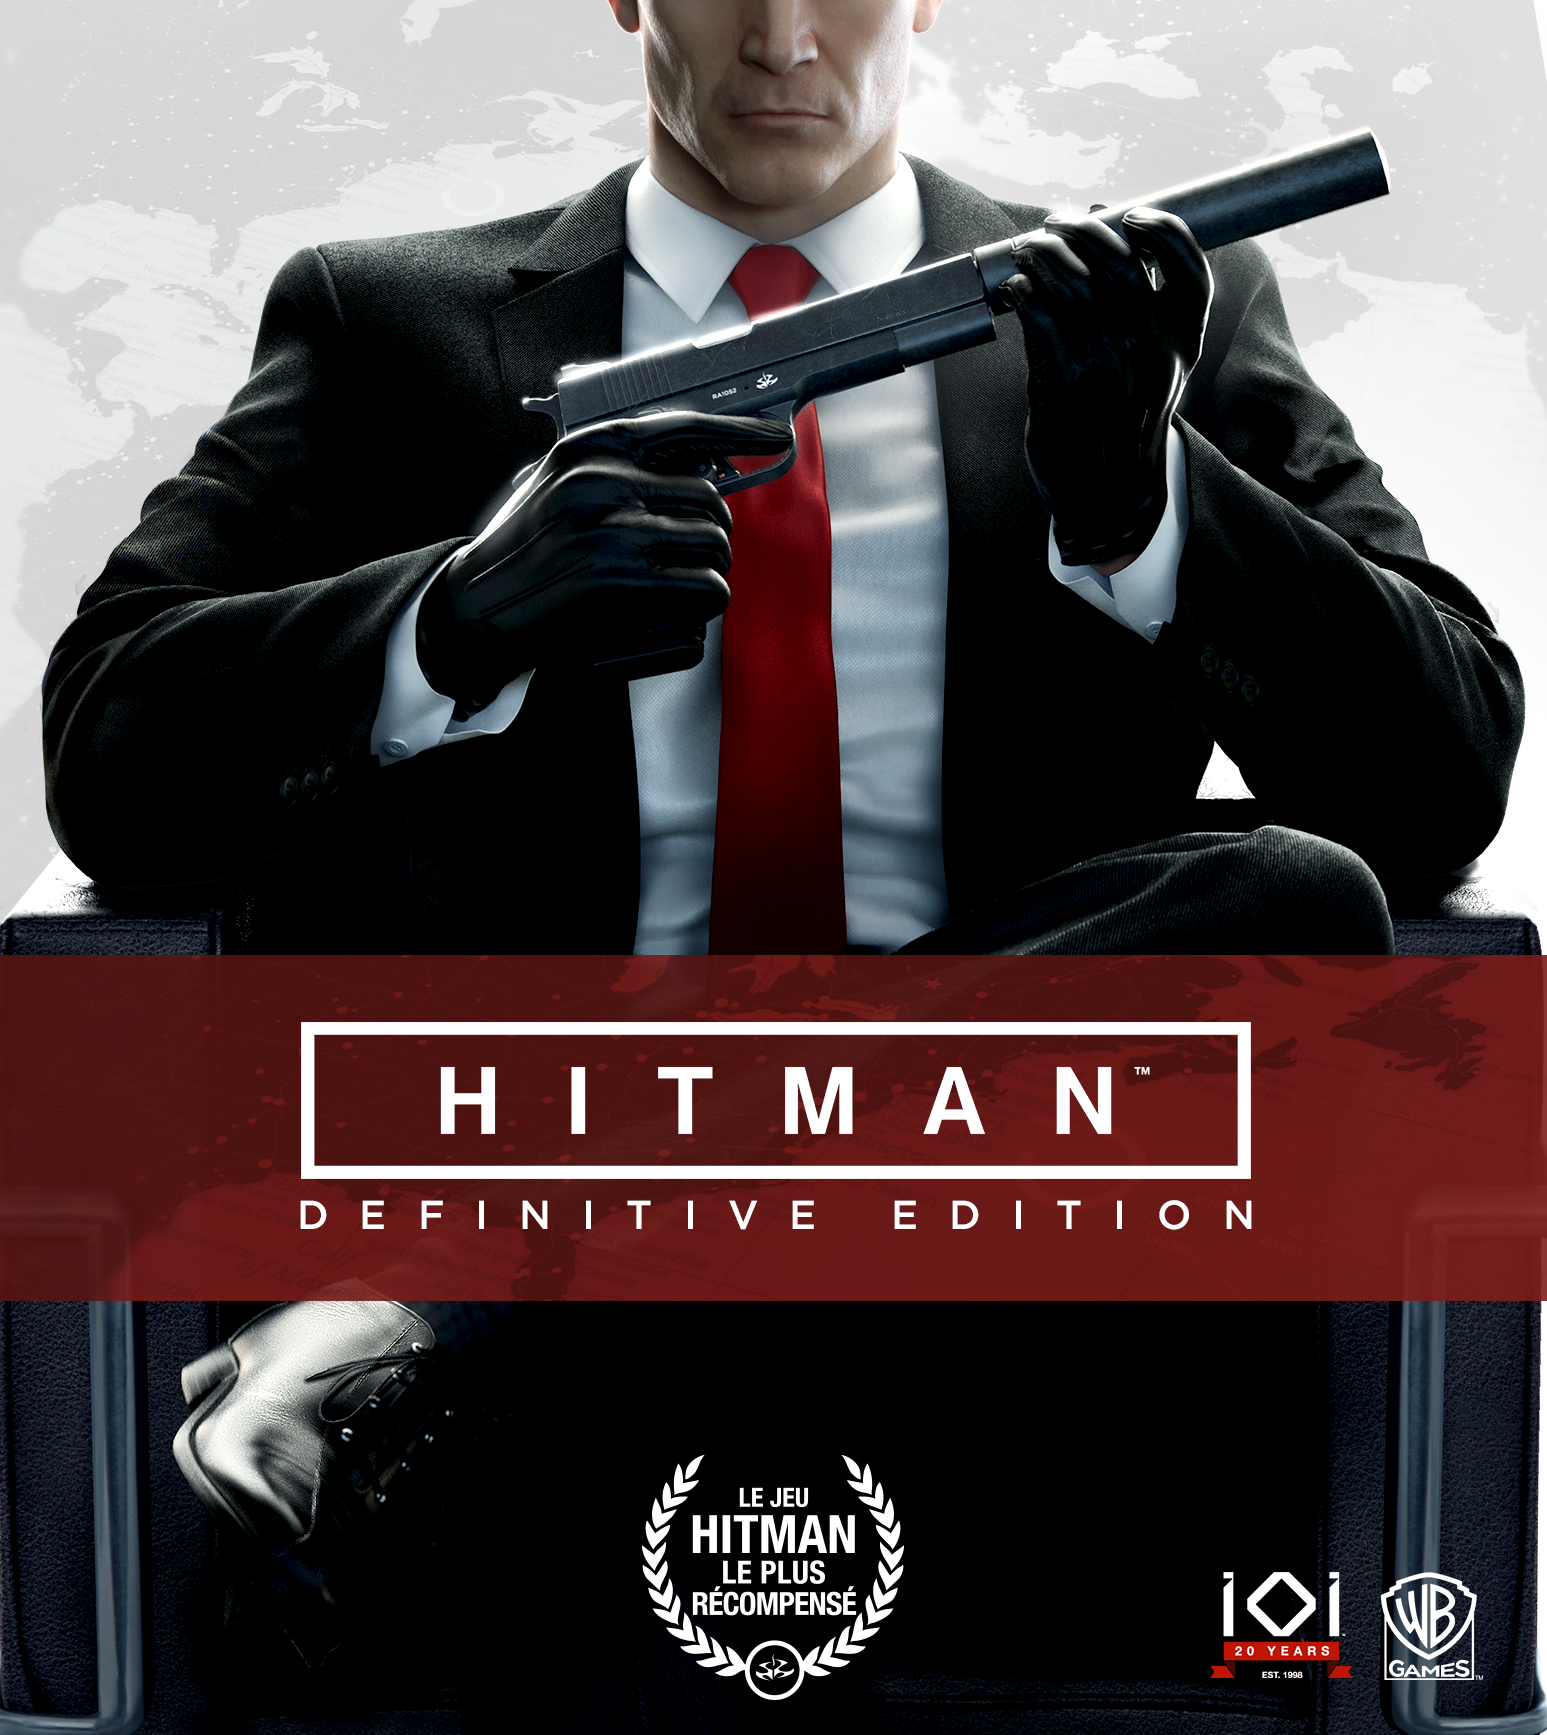 Hitman-DefinitiveEdition Multi Jaquette 001